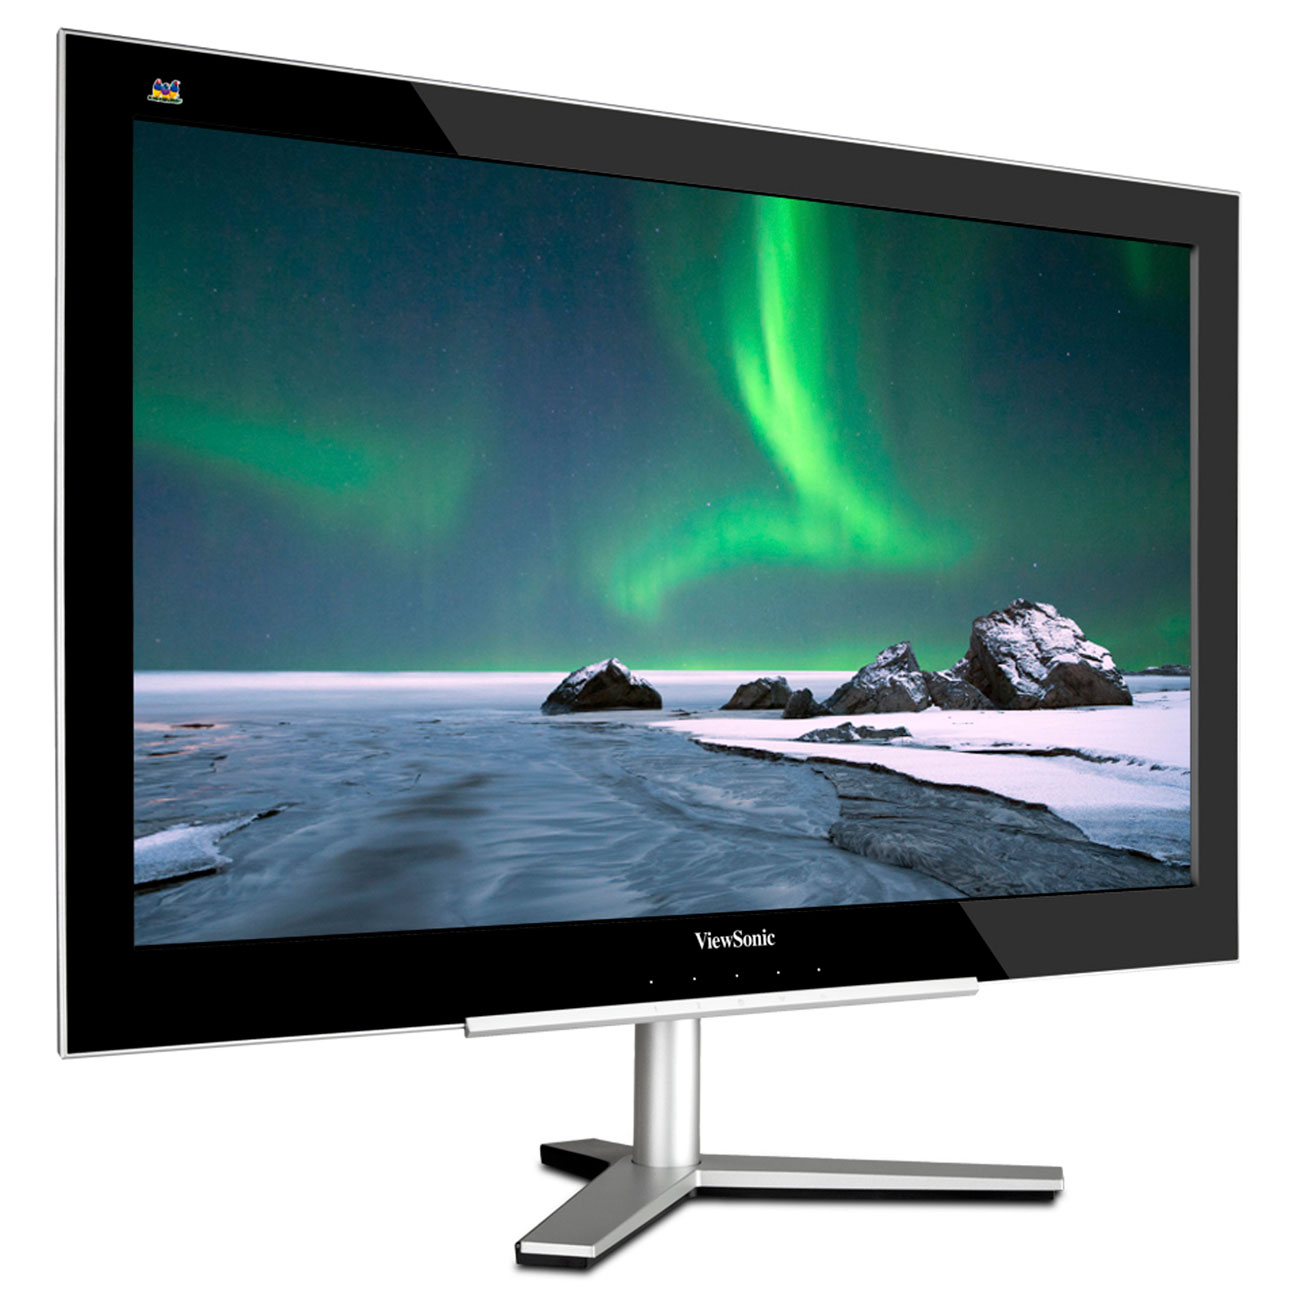 viewsonic 24 led vx2460h led ecran pc viewsonic sur. Black Bedroom Furniture Sets. Home Design Ideas